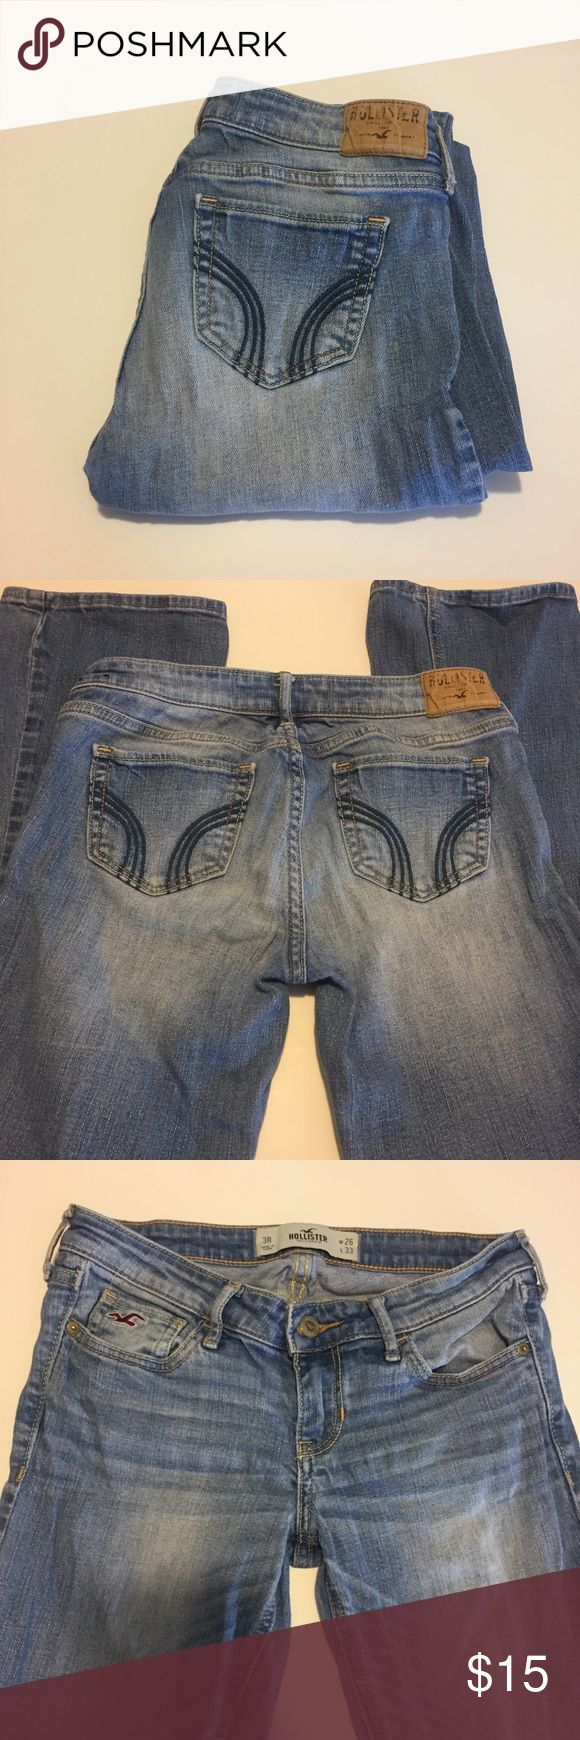 Hollister stretch jeAns OBO Hollister stretch bootcut jeans with blue stitching on back pockets. Like new condition!! Booty flattering. Hollister Jeans Boot Cut